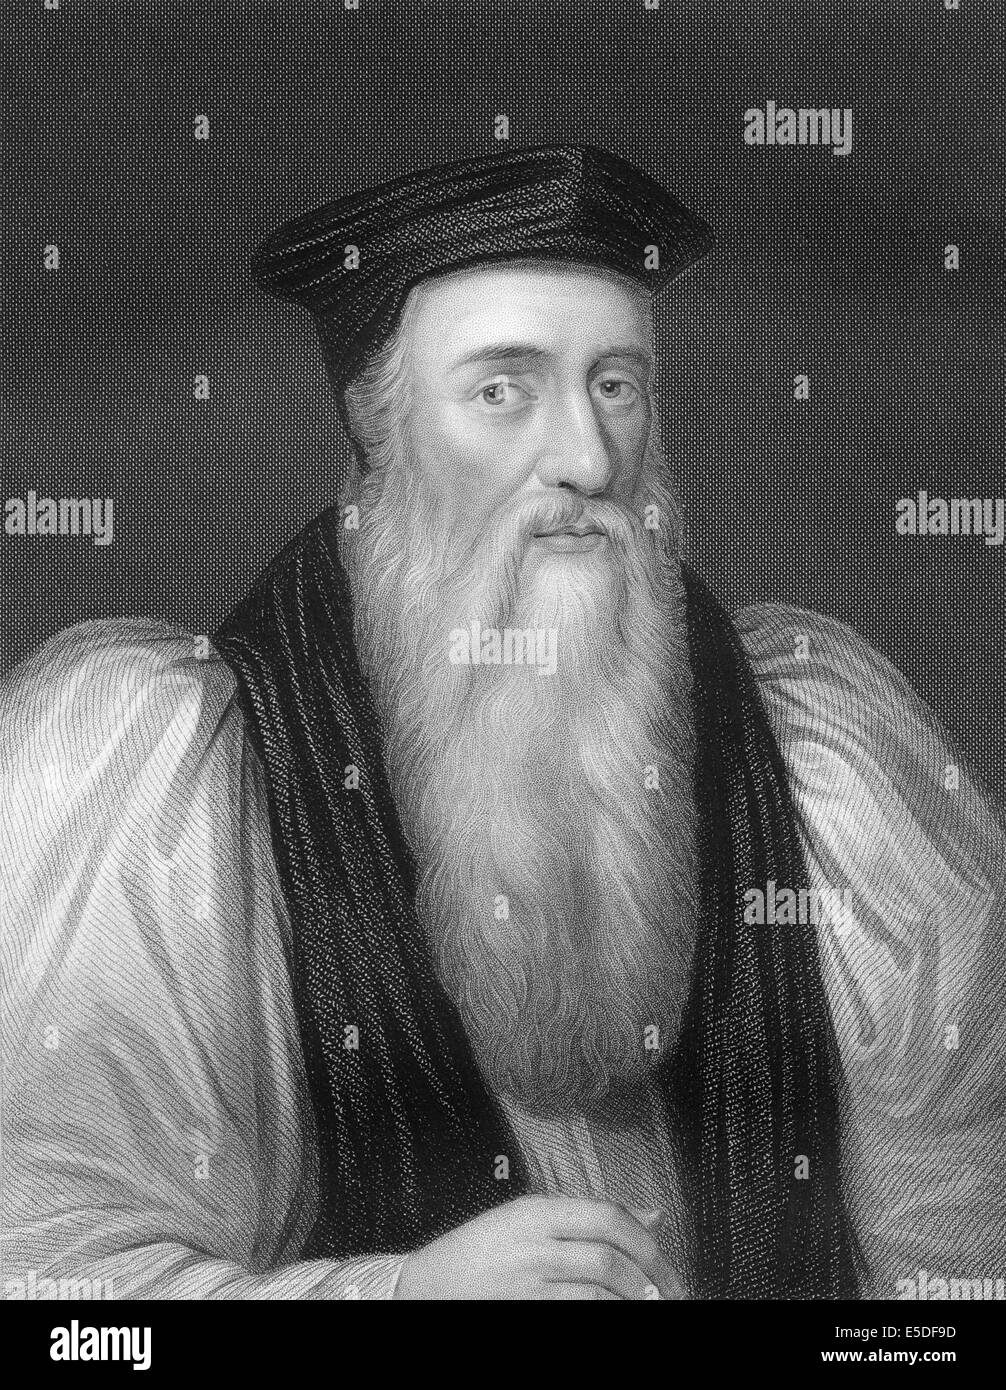 Steel engraving, c. 1860, Thomas Cranmer, 1489-1556, a leader of the English Reformation and Archbishop of Canterbury - Stock Image